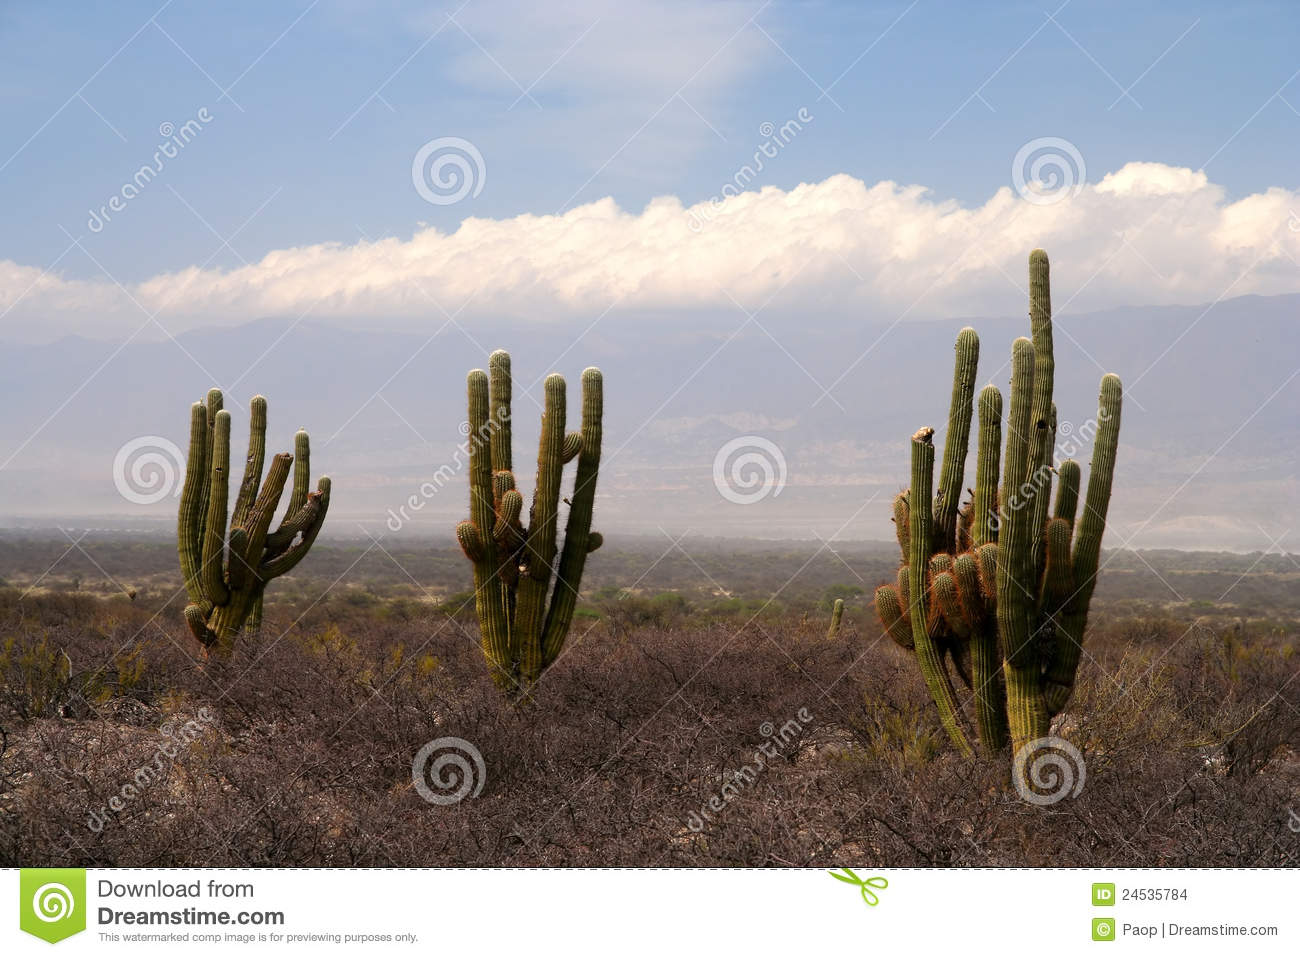 Three cactuses